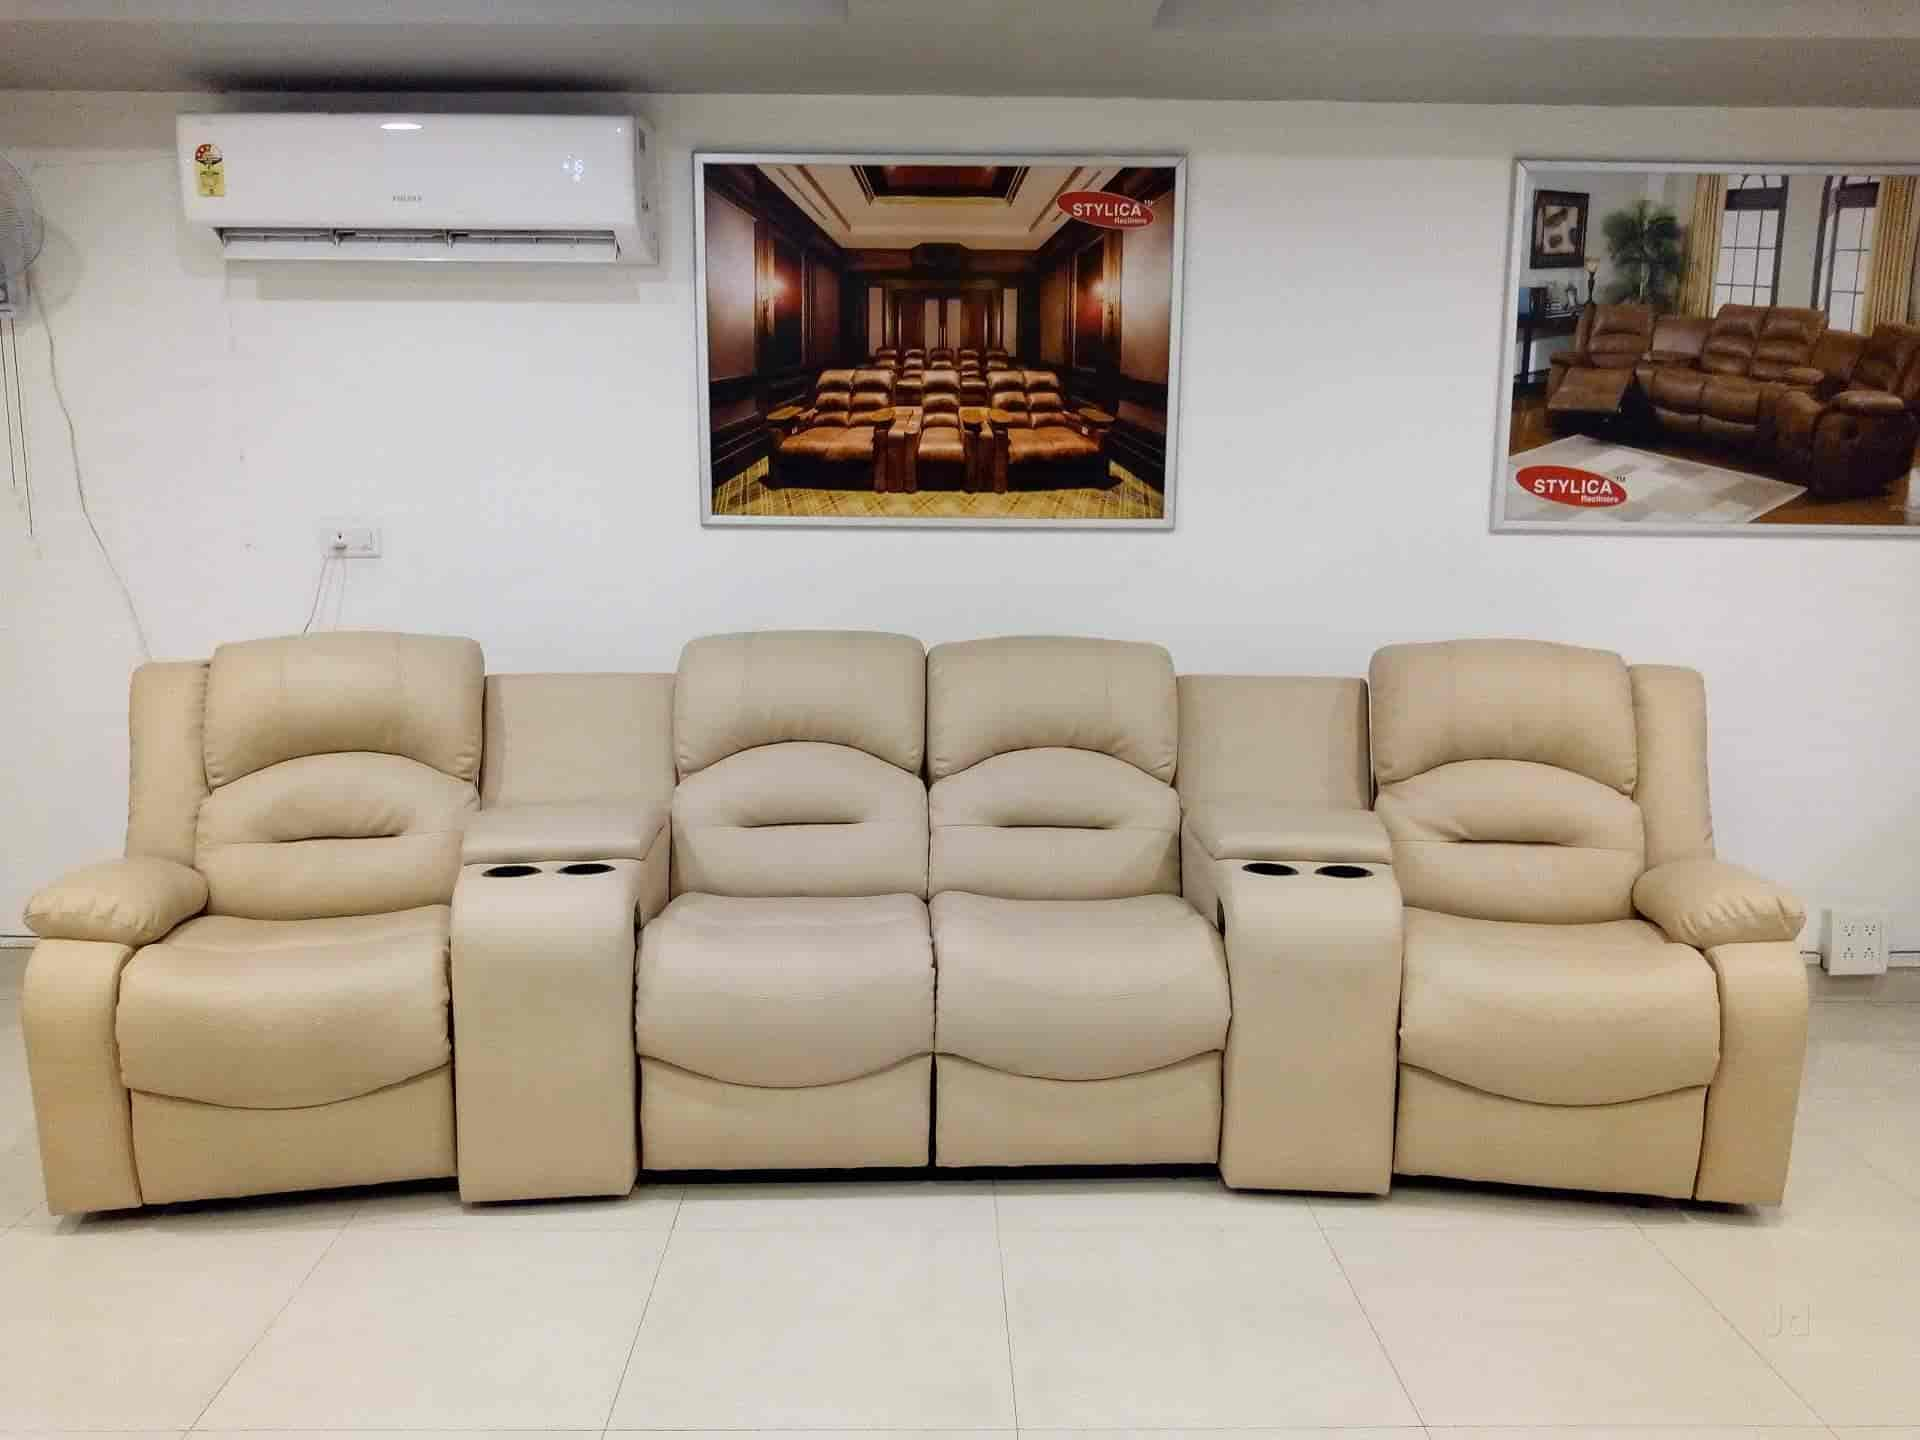 Recliner Sofa Kirti Nagar 165 Degree Stylica Recliners Kirti Nagar Massage Chair